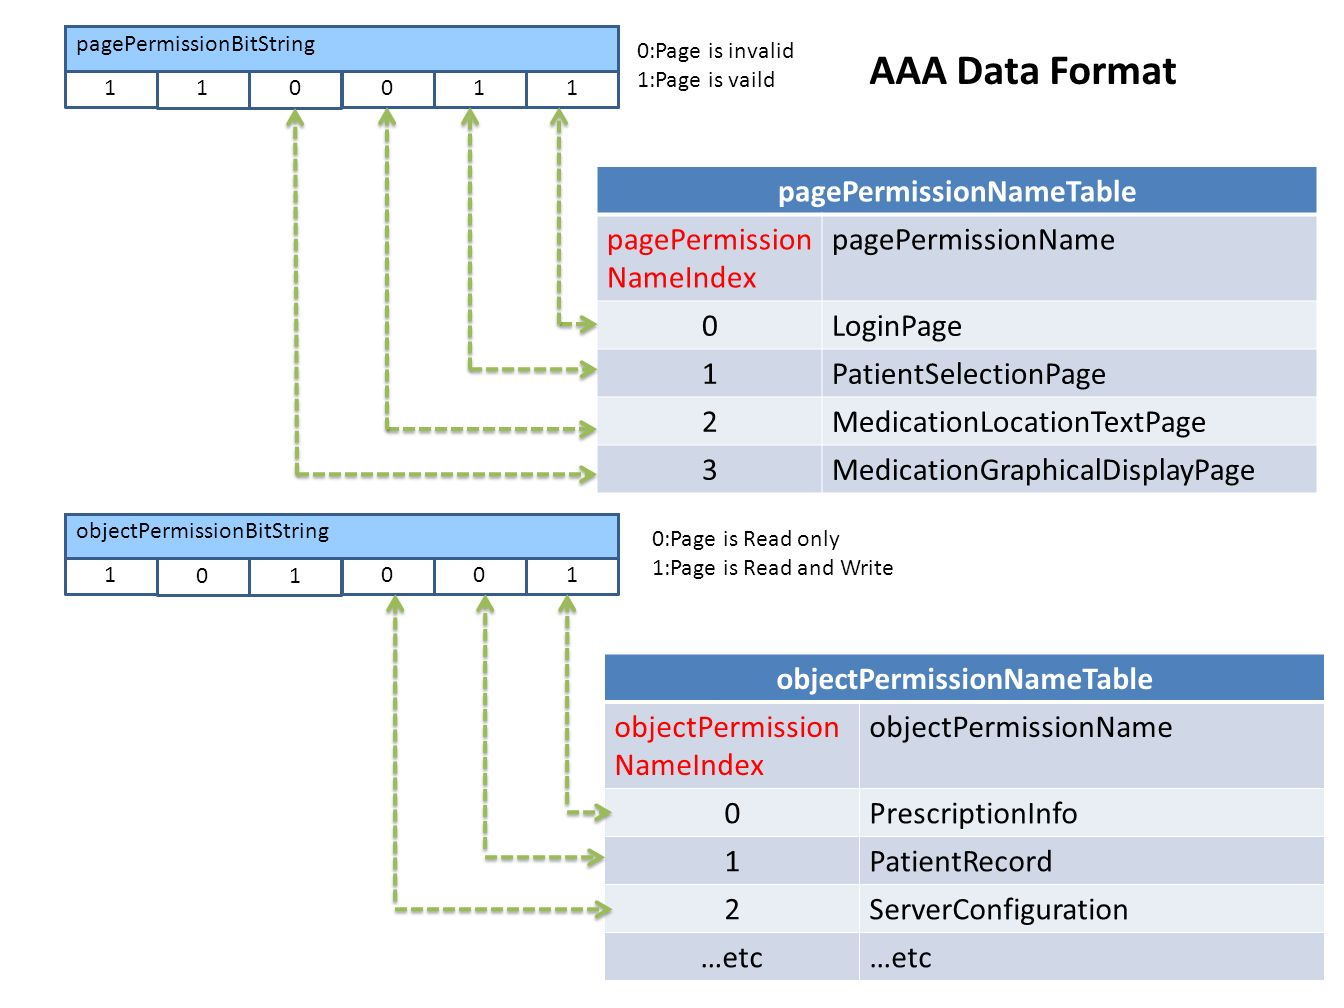 AAA Data structure PERMISSIONMAPPINGTABLE(Key: Job class & Role class) MUMS_SIGNIN_REQUEST MUMSID UserName[LOGIN_USER_NAME_LENGTH]; WCHAR Password[LOGIN_PASSWORD_LENGTH]; HANDLE UserRole USER_ROLE pagePermissionBitString objectPermissionBitString LOGIN_SESSION_INFO LoginSessionID UserRole USER_ROLE HANDLE JOB_CLASSJobClass STRINGLoiginTime AAA_SESSION_INFO OnServiceSessionID LoginSessionInfo LIST_ENTRY HANDLE WCHAR UserName pagePermissionBitString objectPermissionBitString pagePermissionBitString objectPermissionBitString LoiginMachineName LoiginMACAddress STRING